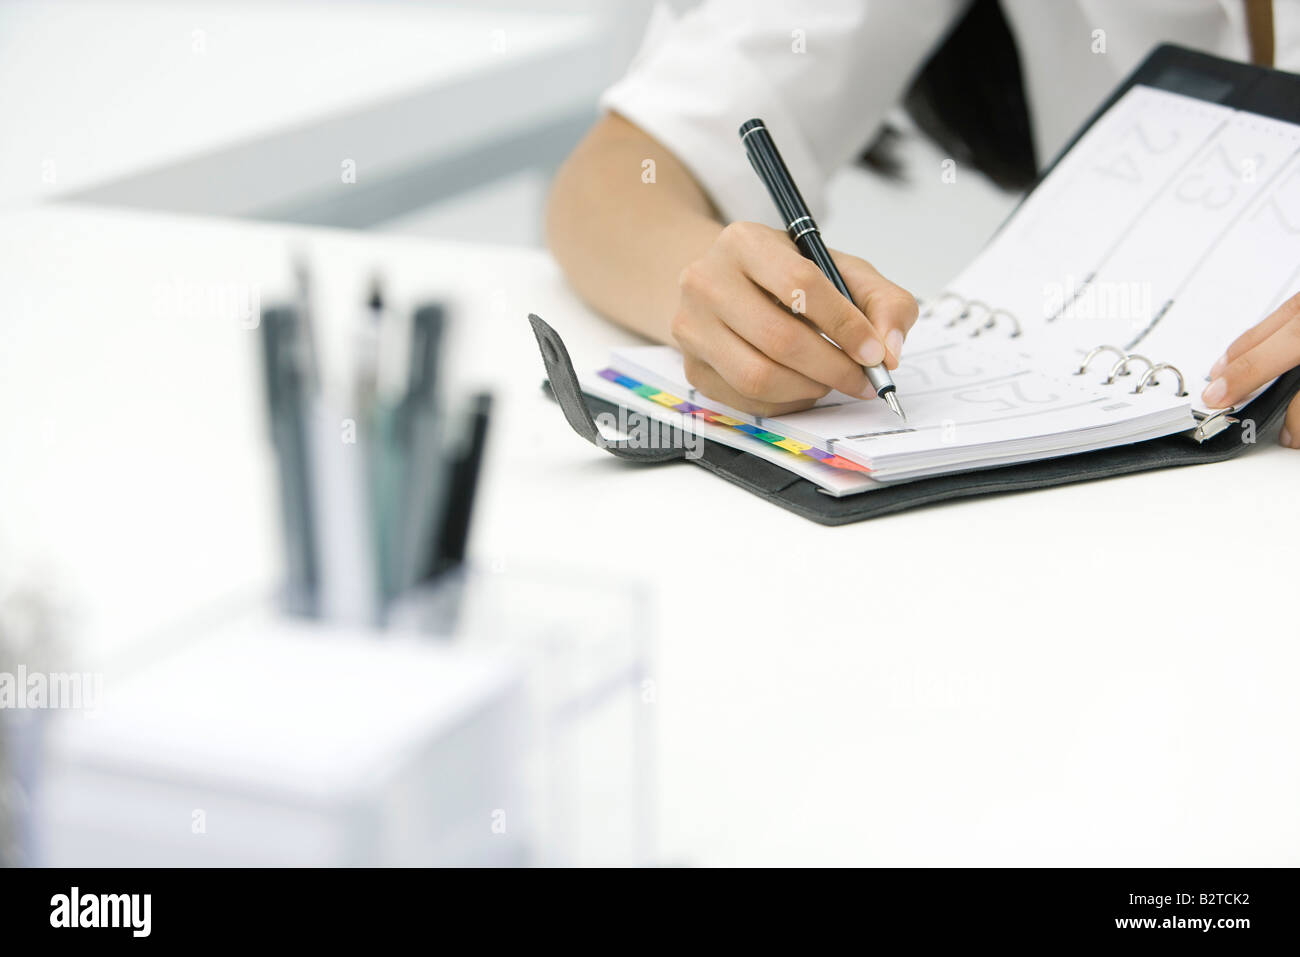 Person writing in agenda, cropped view - Stock Image